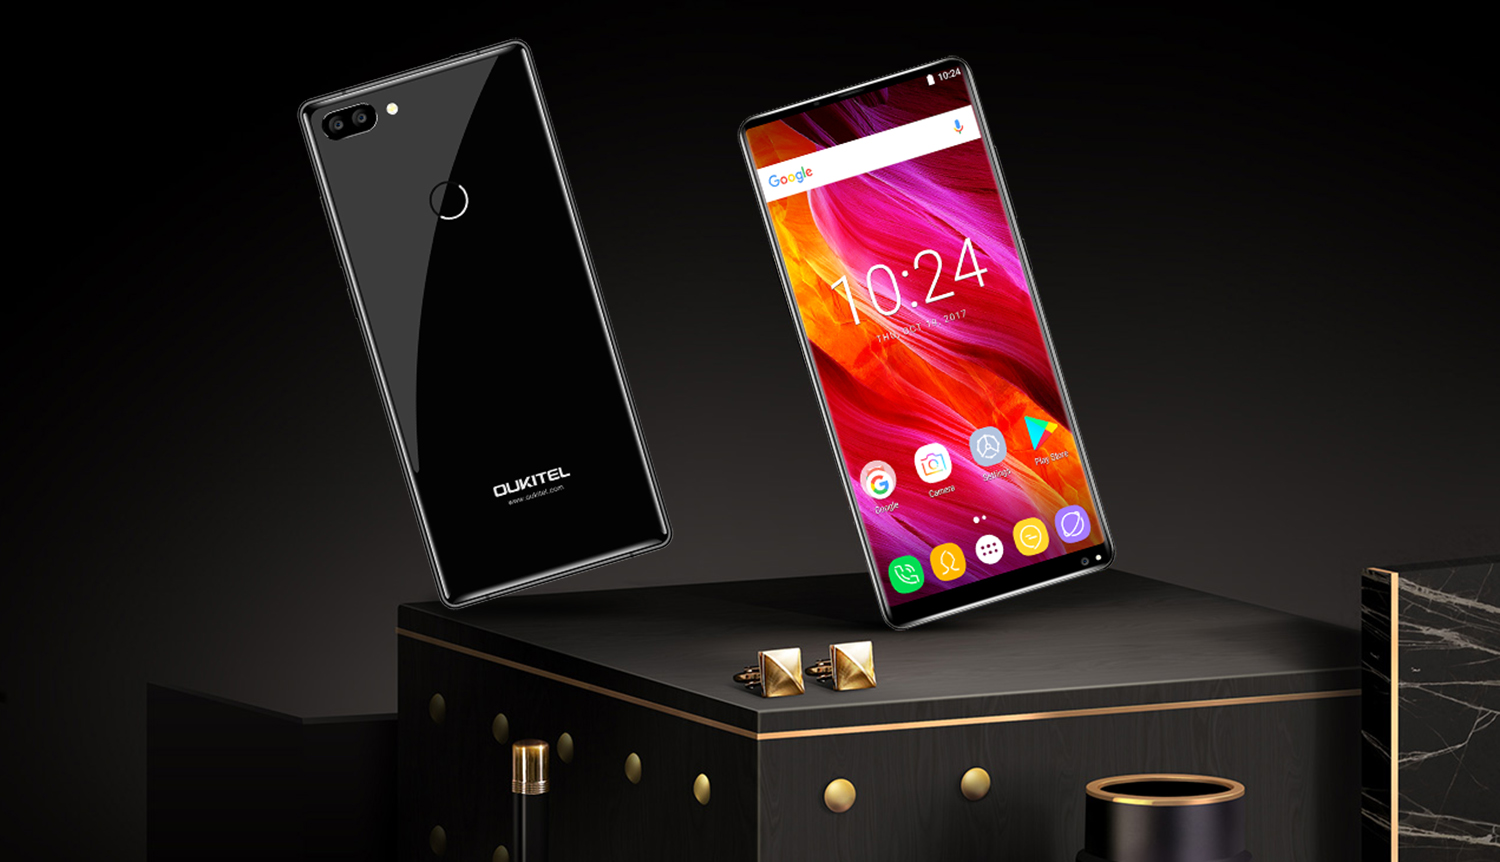 Become one of the first owners OUKITEL MIX 2!